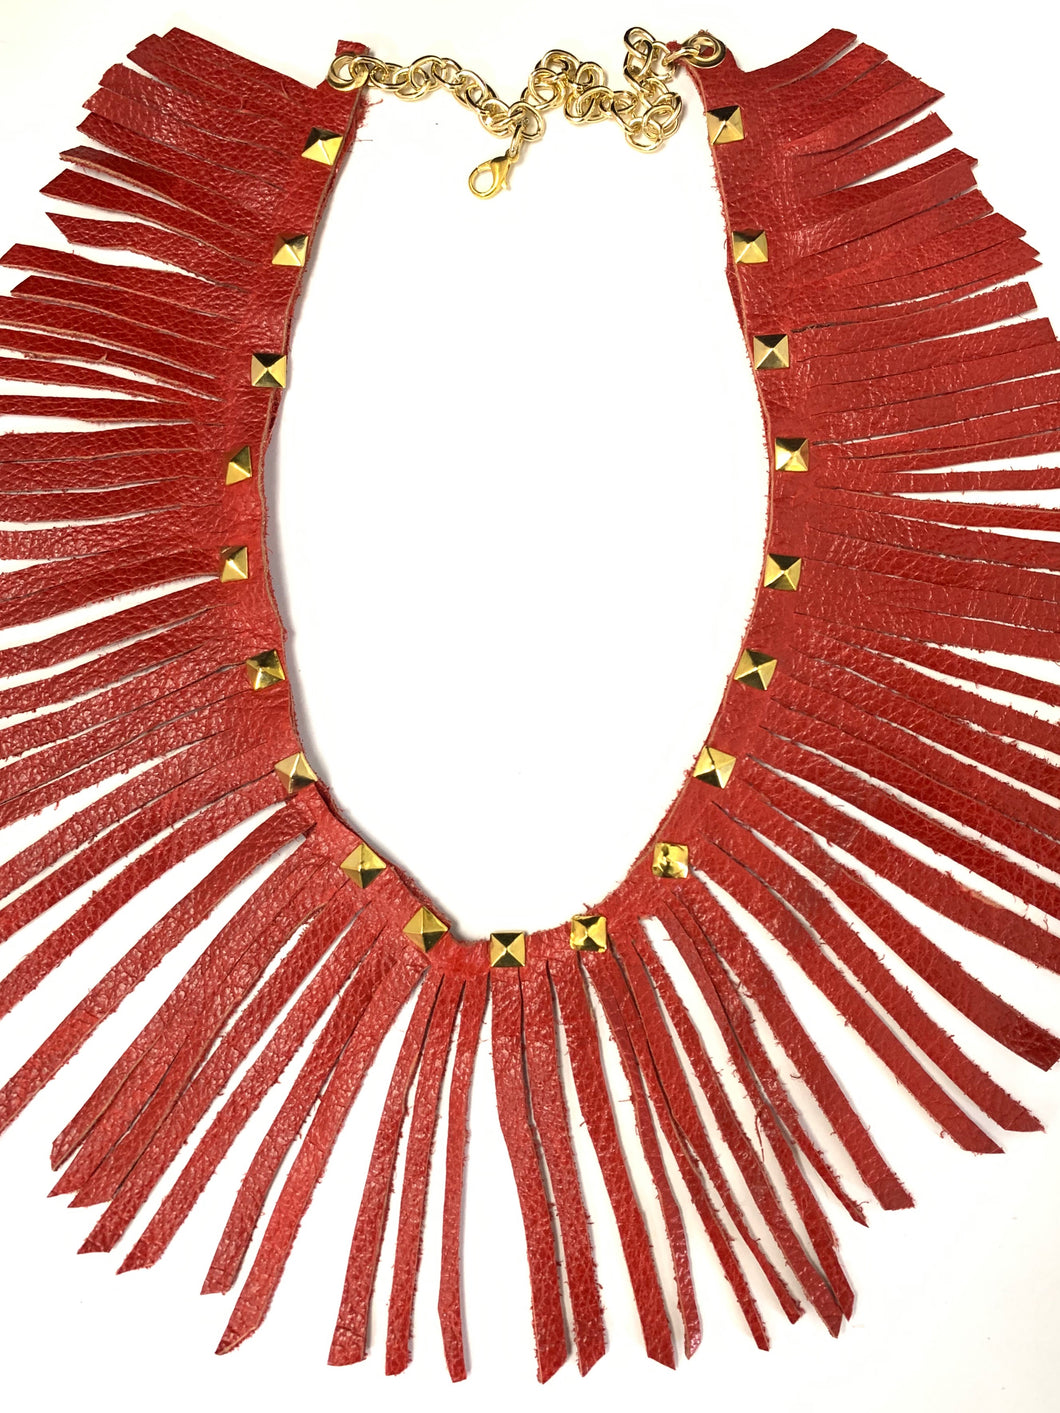 Wrap Around Red Leather Fringe Necklace